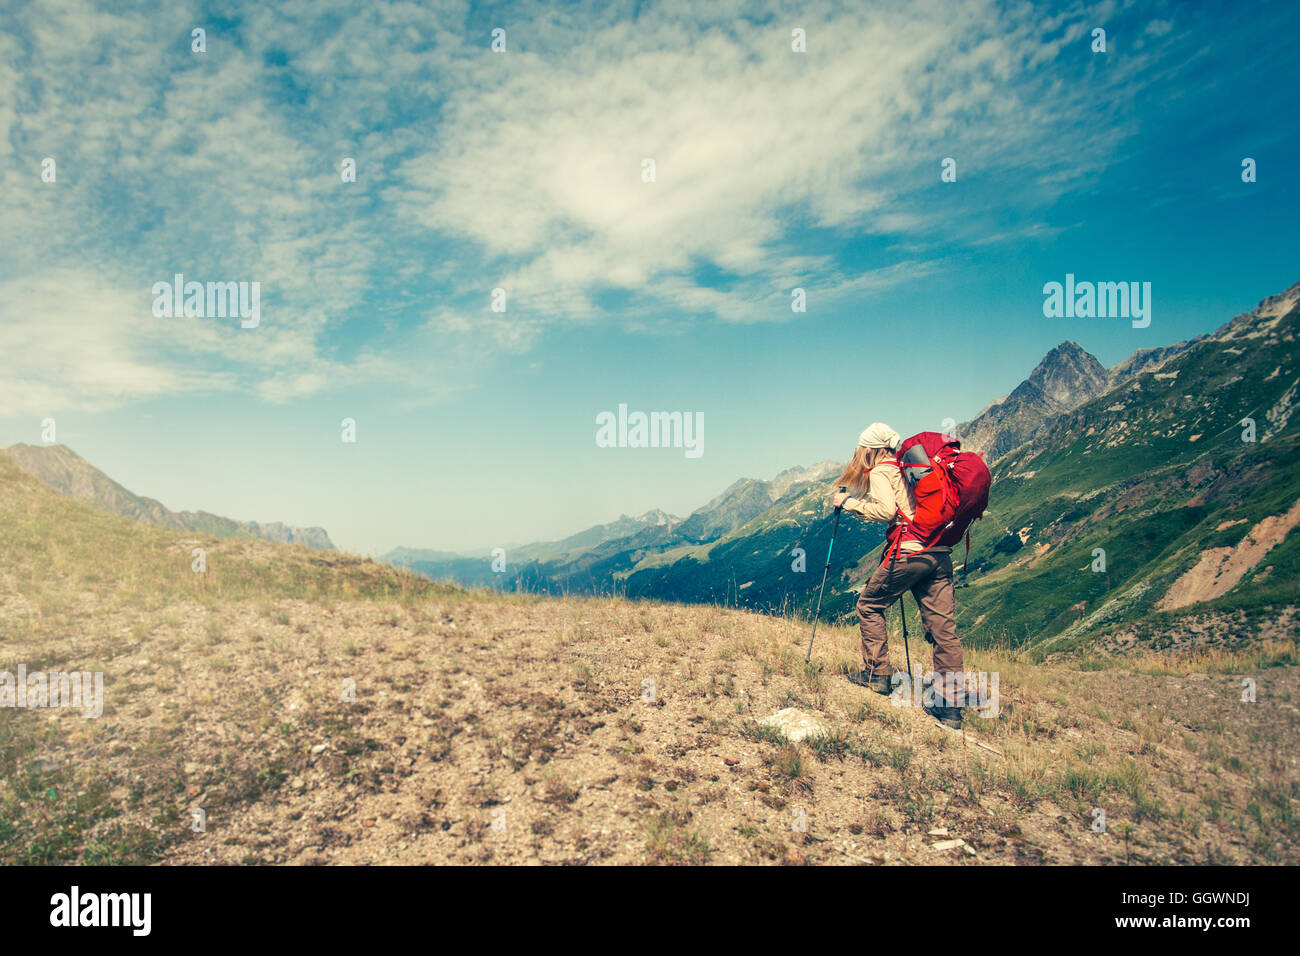 Woman with backpack mountaineering Travel Lifestyle concept active vacations outdoor mountains and clouds on background - Stock Image